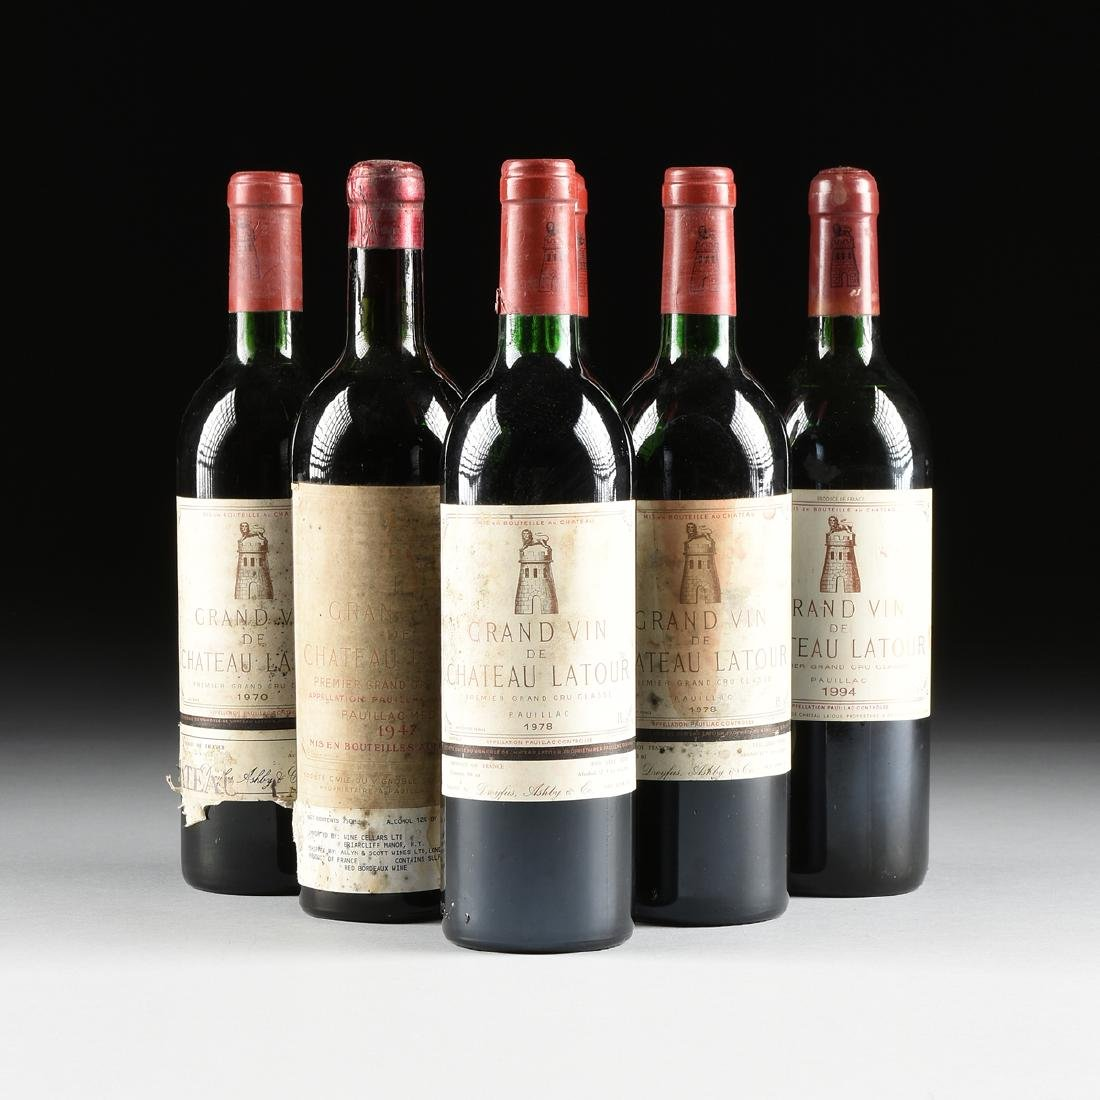 A MIXED GROUP OF SIX BOTTLES OF GRAND VIN DE CHÂTEAU